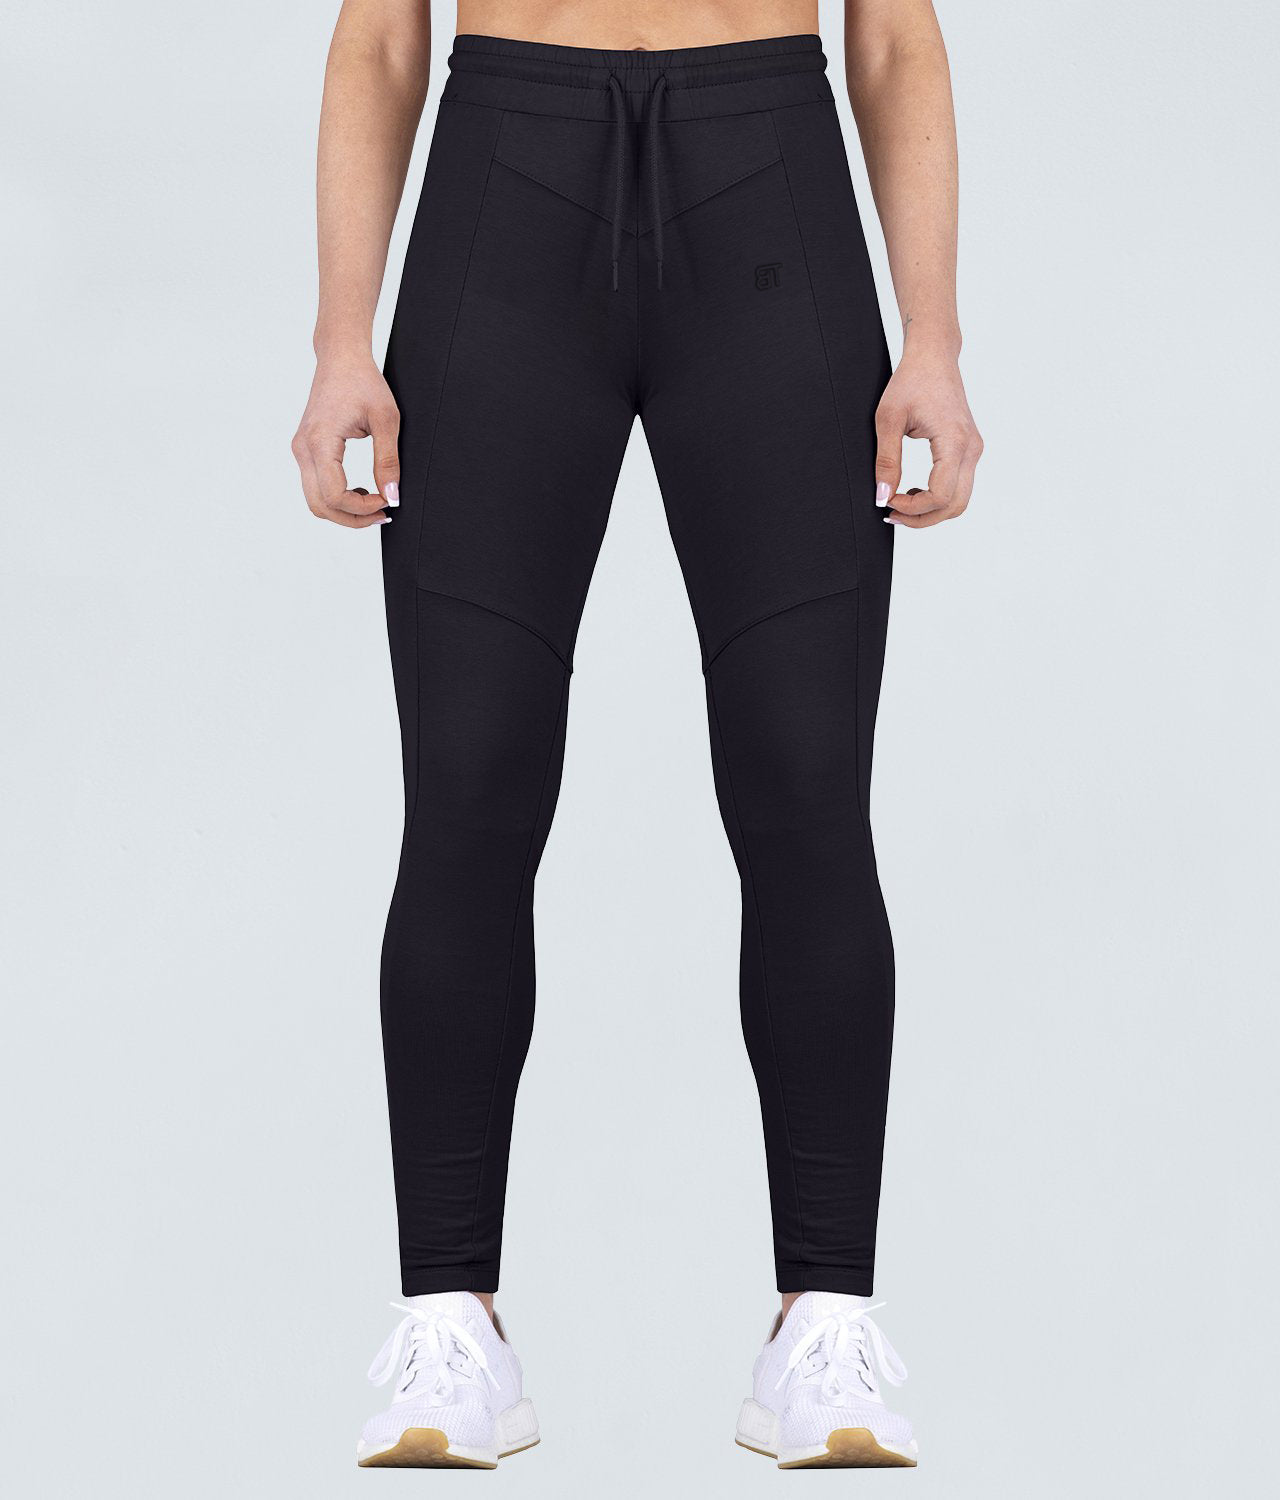 Born Tough Contoured Flexible Fabric Black Crossfit Tracksuit Jogger Leggings for Women